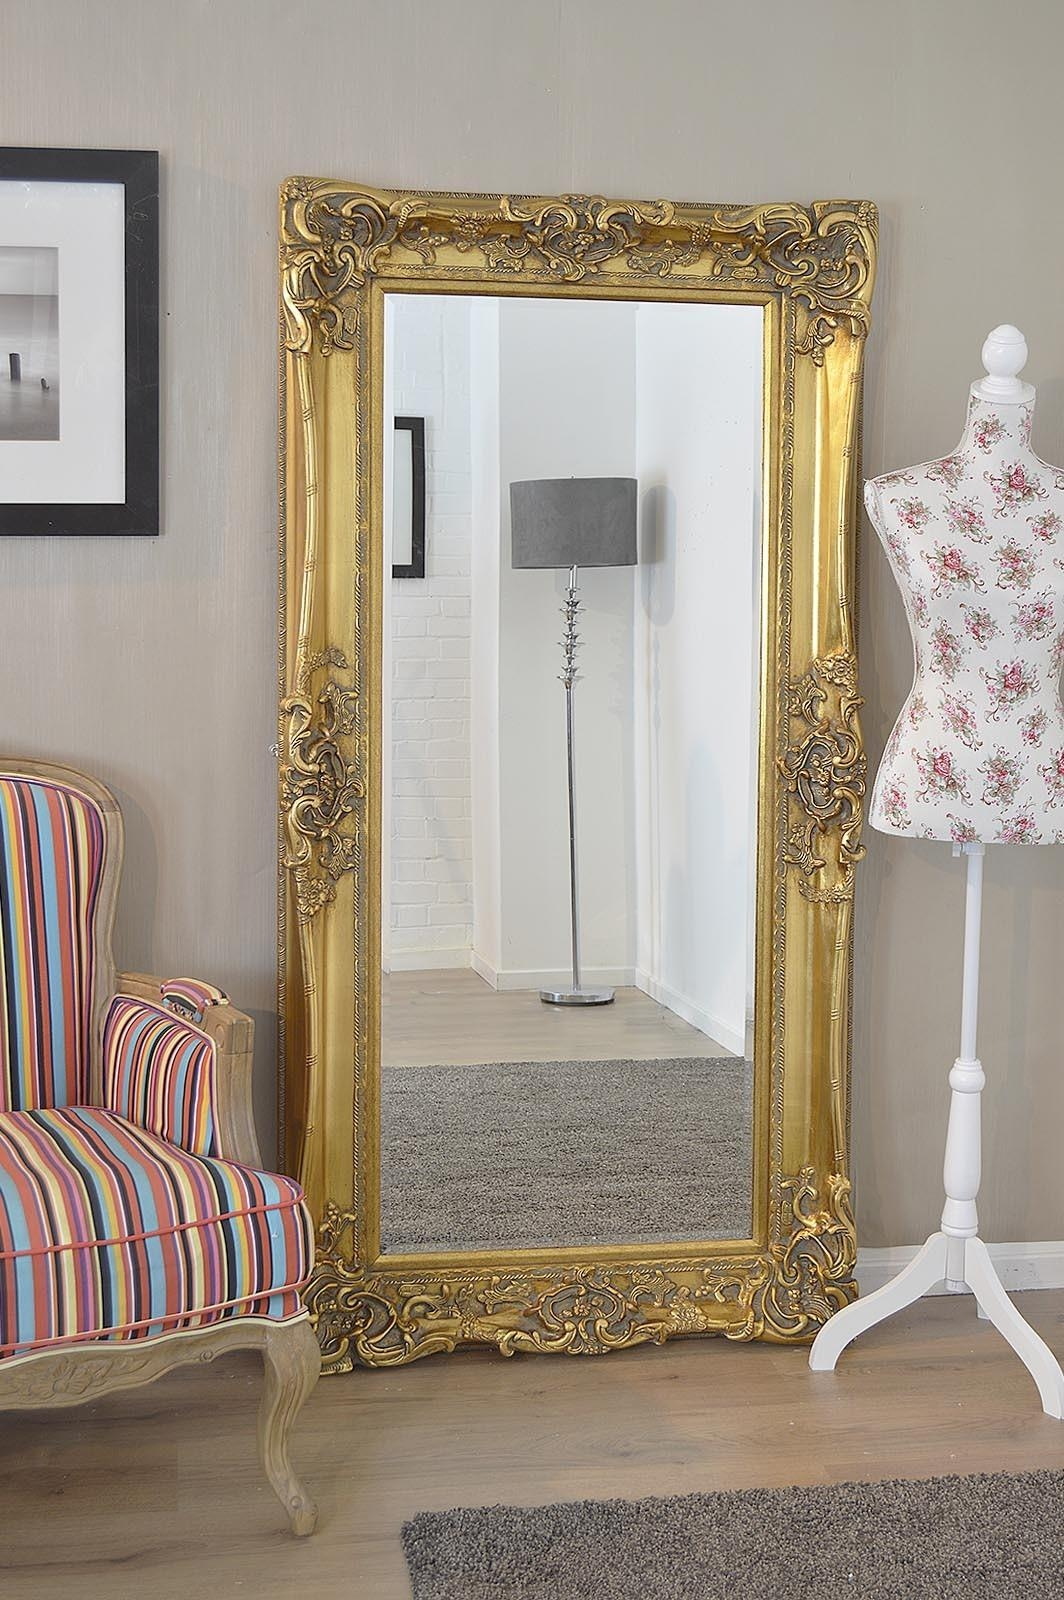 Full Length Mirrors For Sale 146 Cool Ideas For Full Length Mirror Throughout Antique Full Length Wall Mirror (Image 13 of 20)